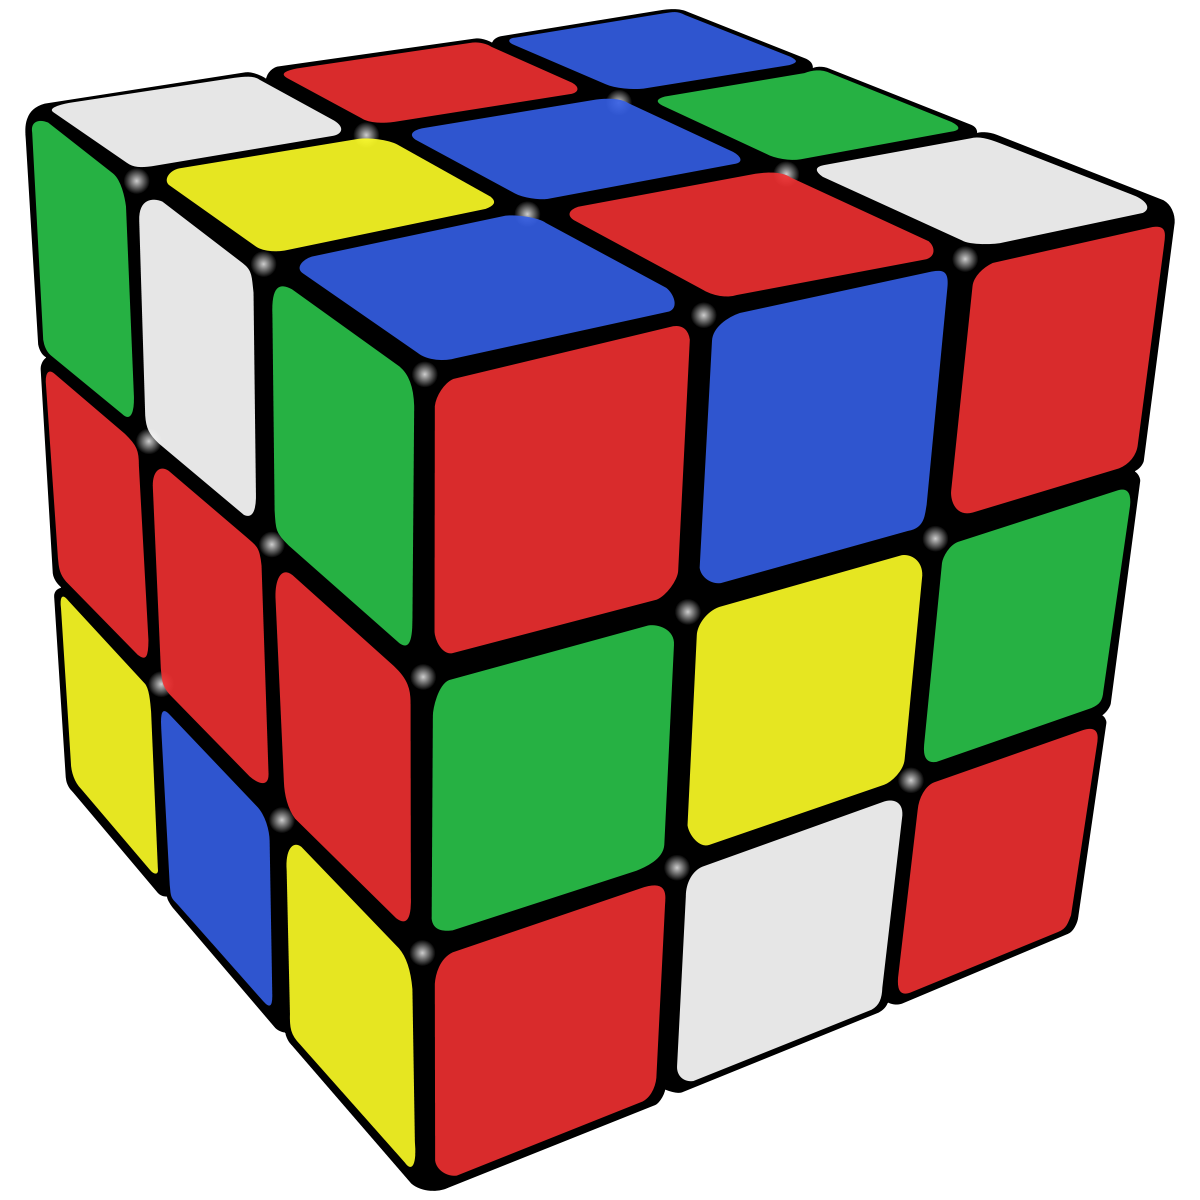 Rubik clipart cube shape. Optimal solutions for s